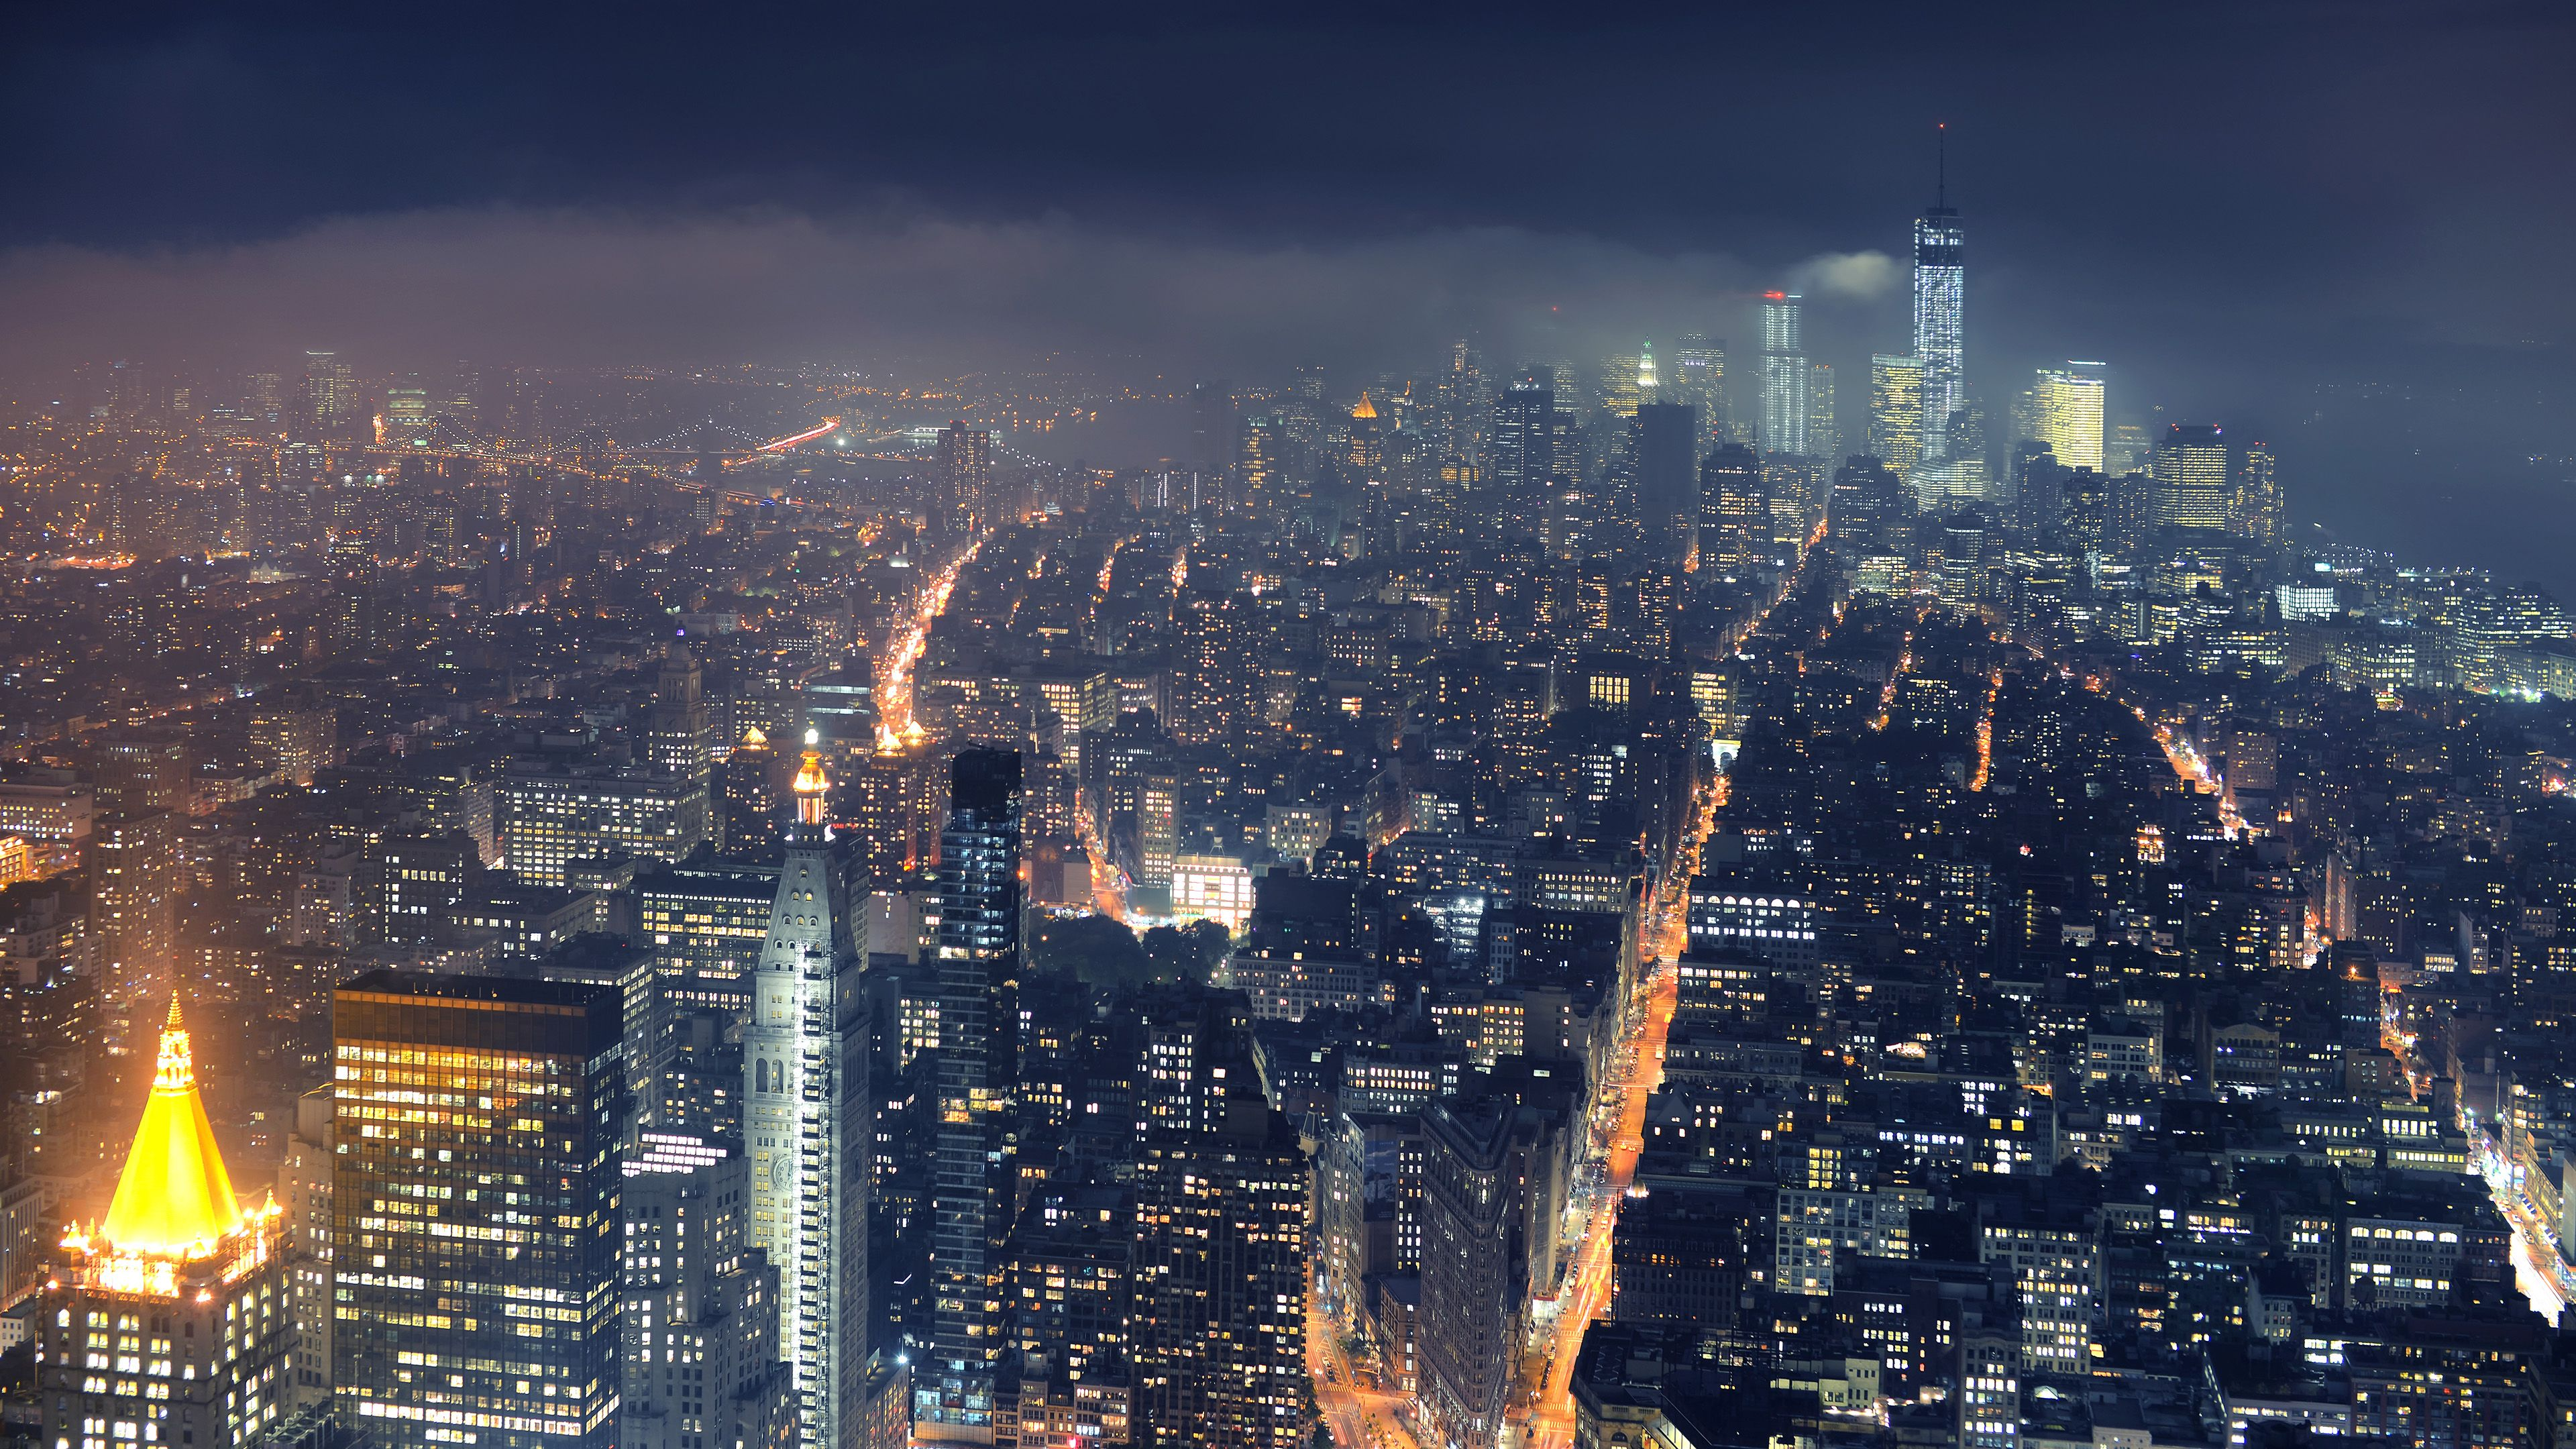 Iconic View Of The New York City Ultra Hd Wallpaper Nyc Skyline City Wallpaper New York Cityscape